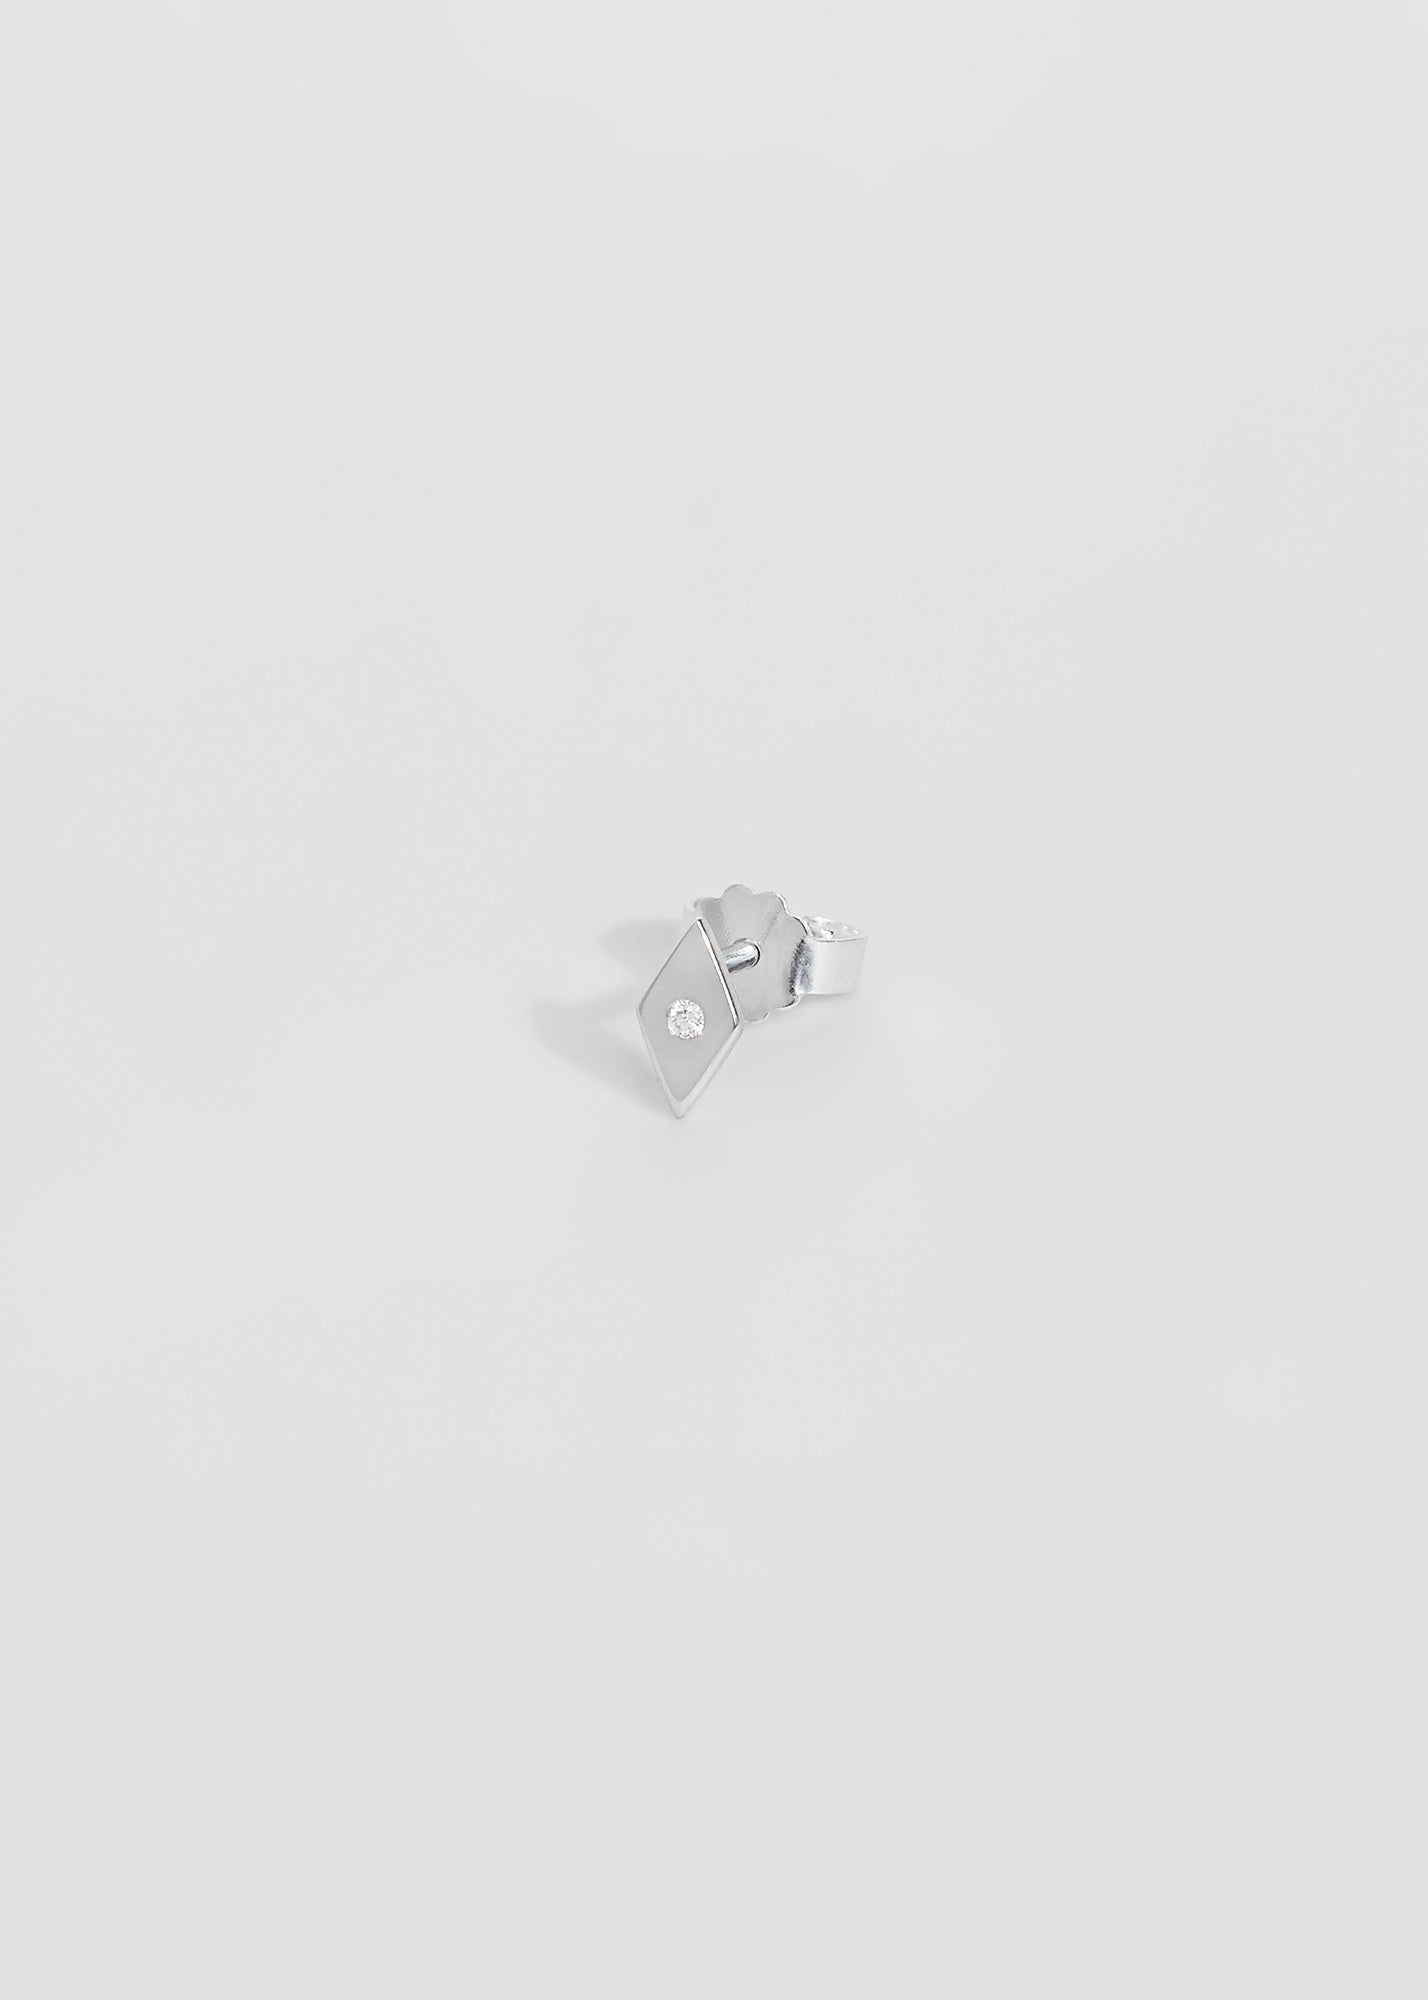 Harlekin Diamond Stud - Trine Tuxen Jewelry